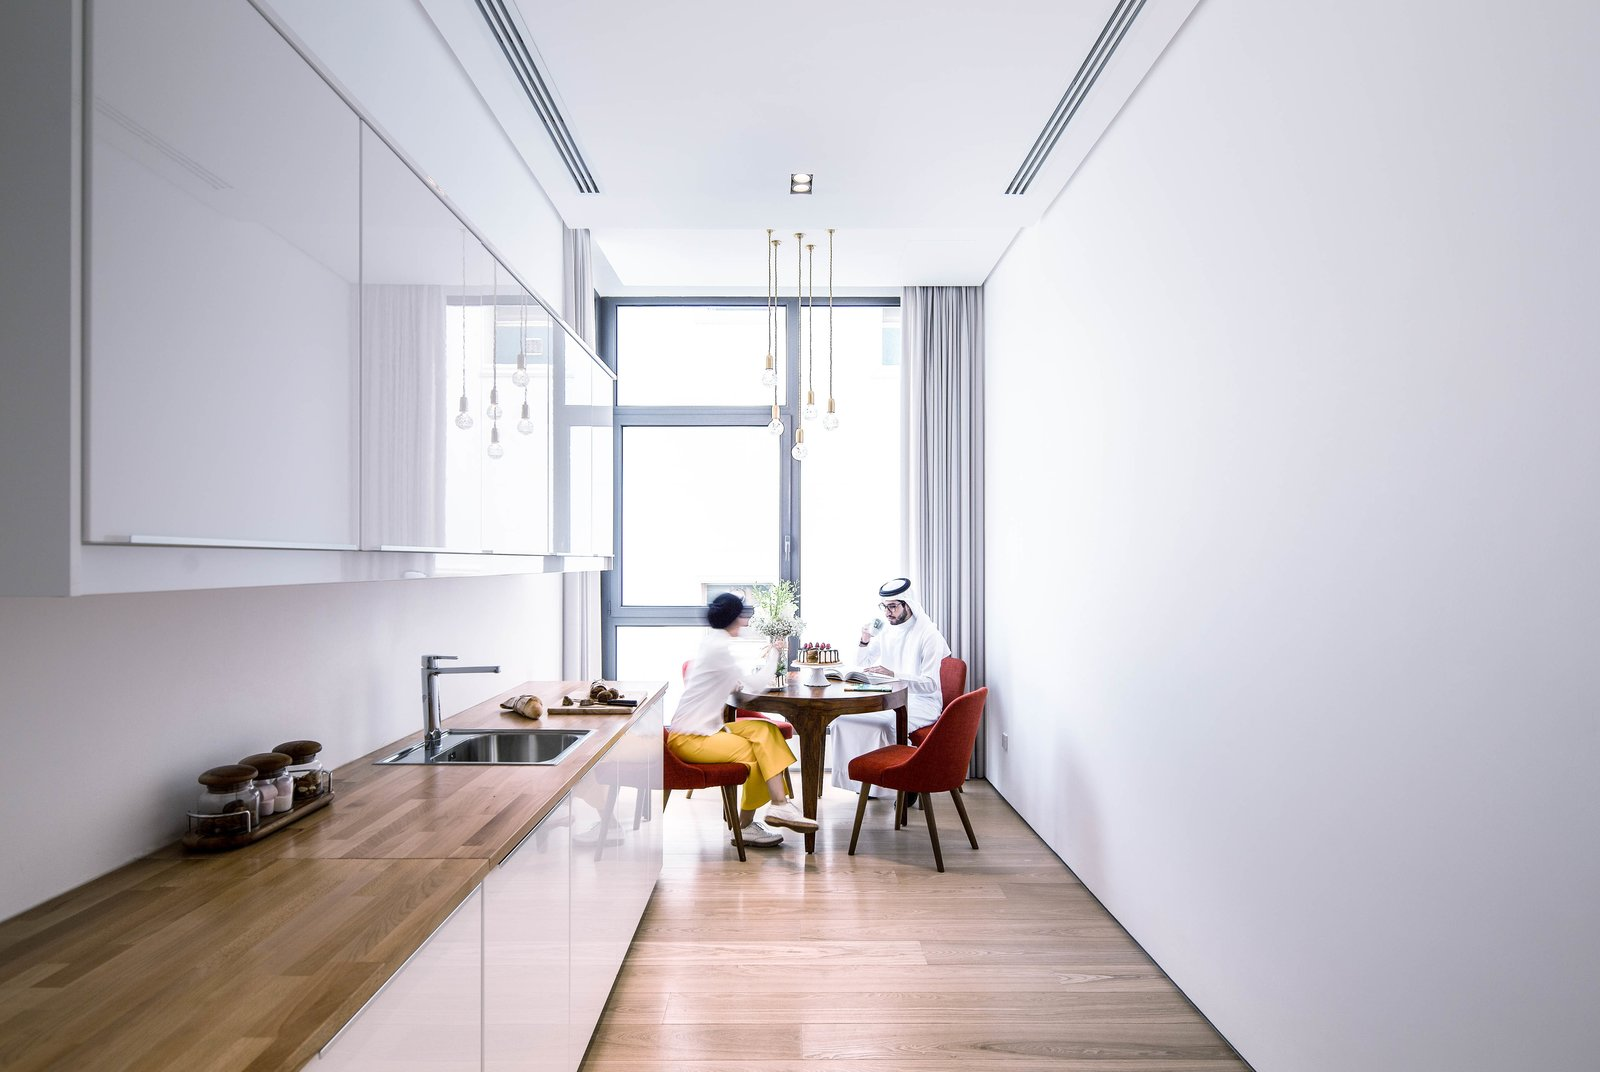 Pantry on the upper floor Tagged: Kitchen, Wood Counter, Ceiling Lighting, Refrigerator, Light Hardwood Floor, Pendant Lighting, White Cabinet, Drop In Sink, Microwave, and Recessed Lighting.  A House in Yarmouk by Studio Toggle